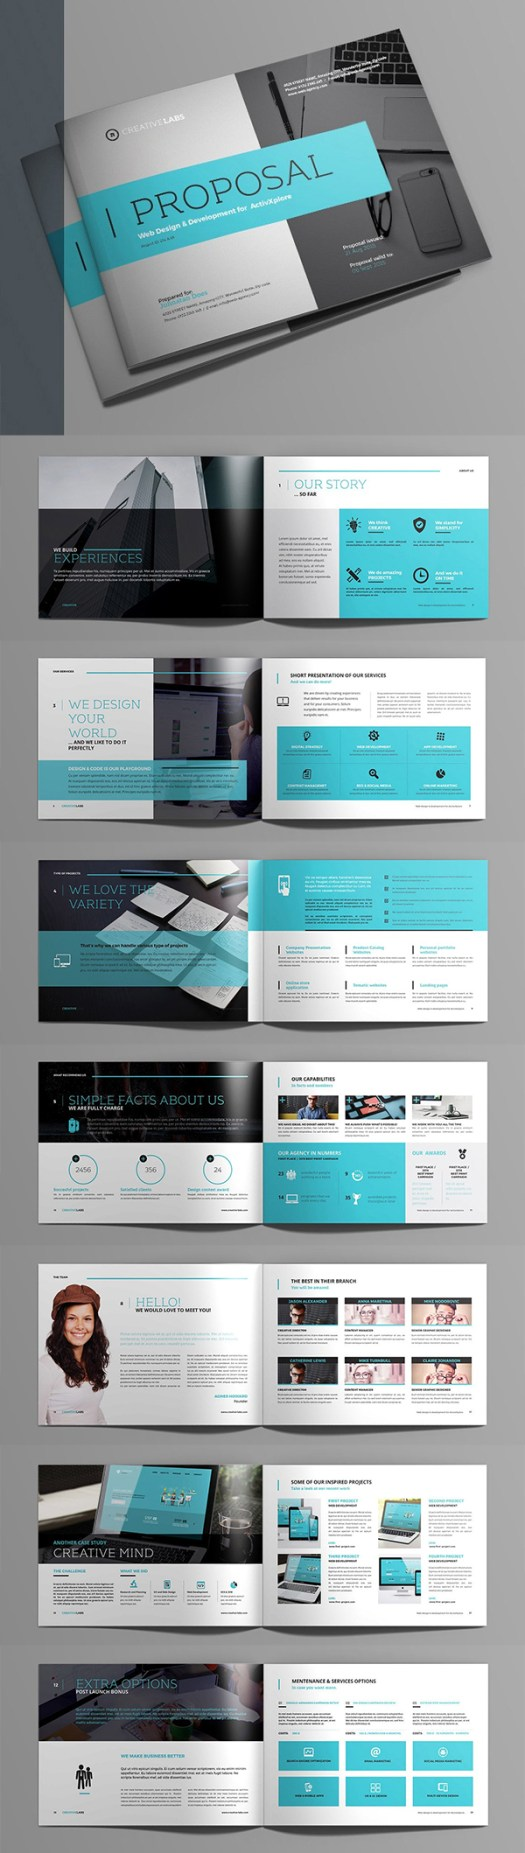 20 new creative business proposal templates mixed sign professional business proposal templates design 11 flashek